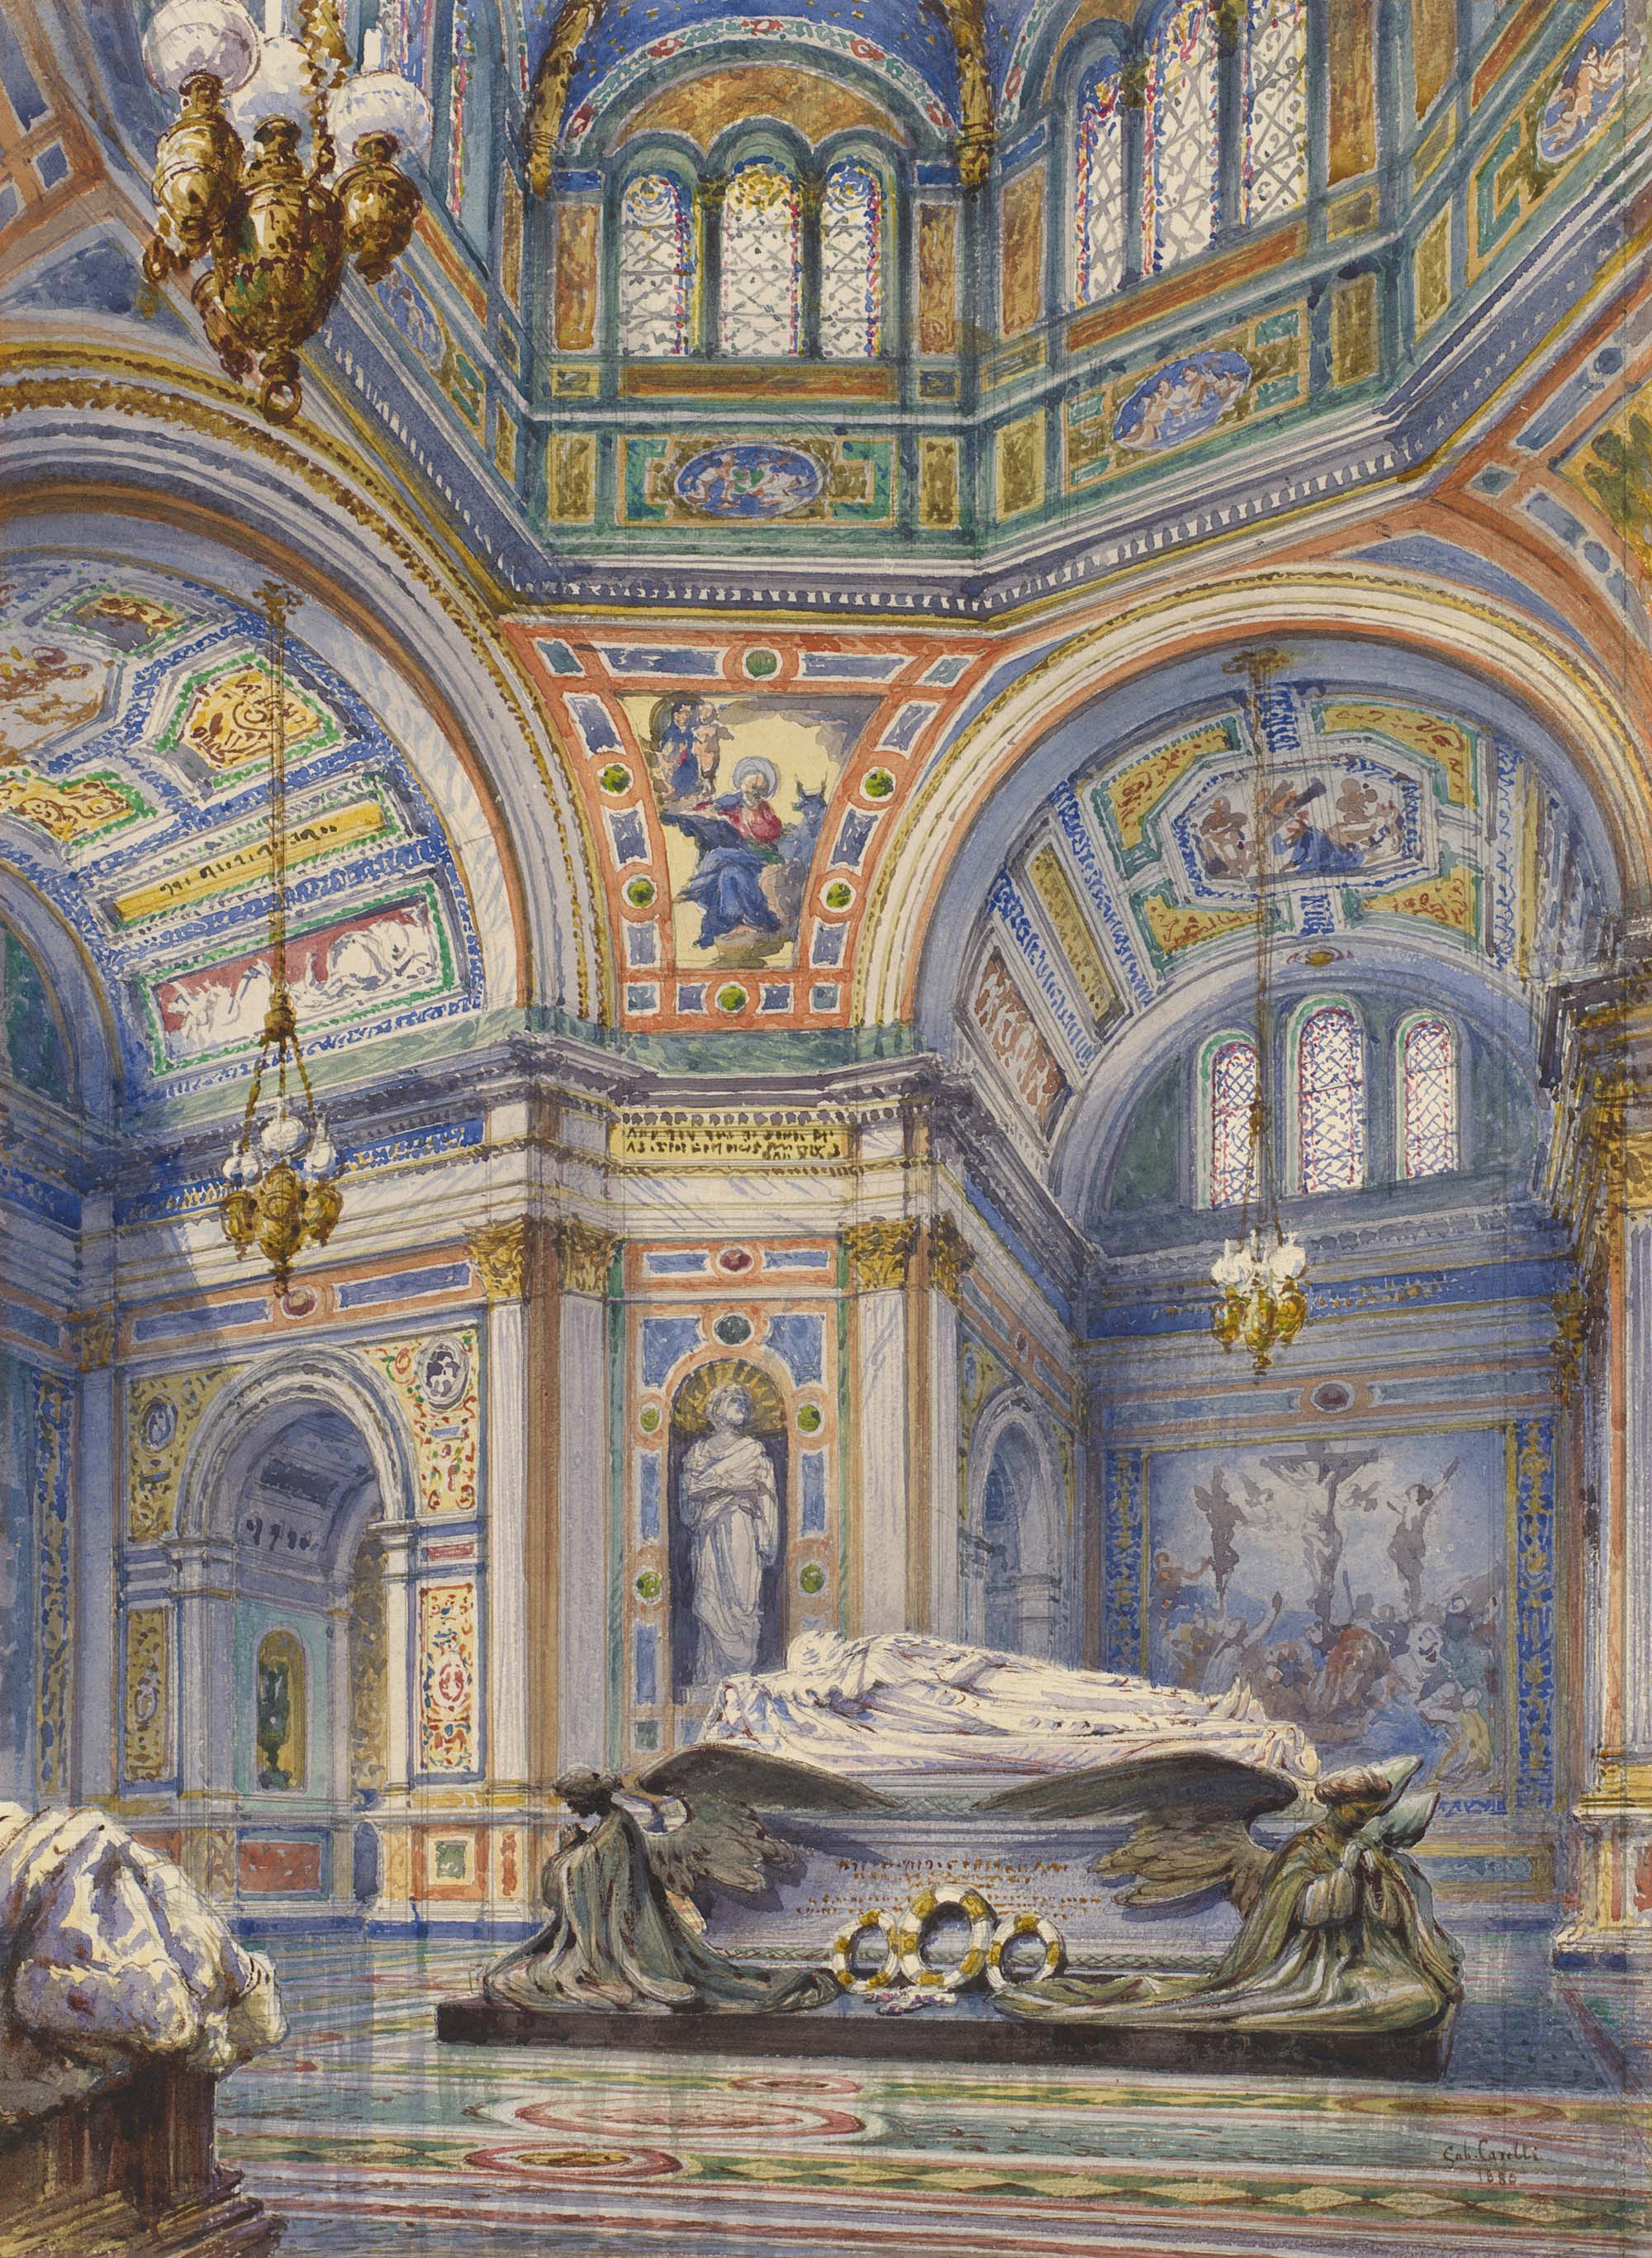 a watercolour of the interior of an ornate domed building with large carved tombs in the middle